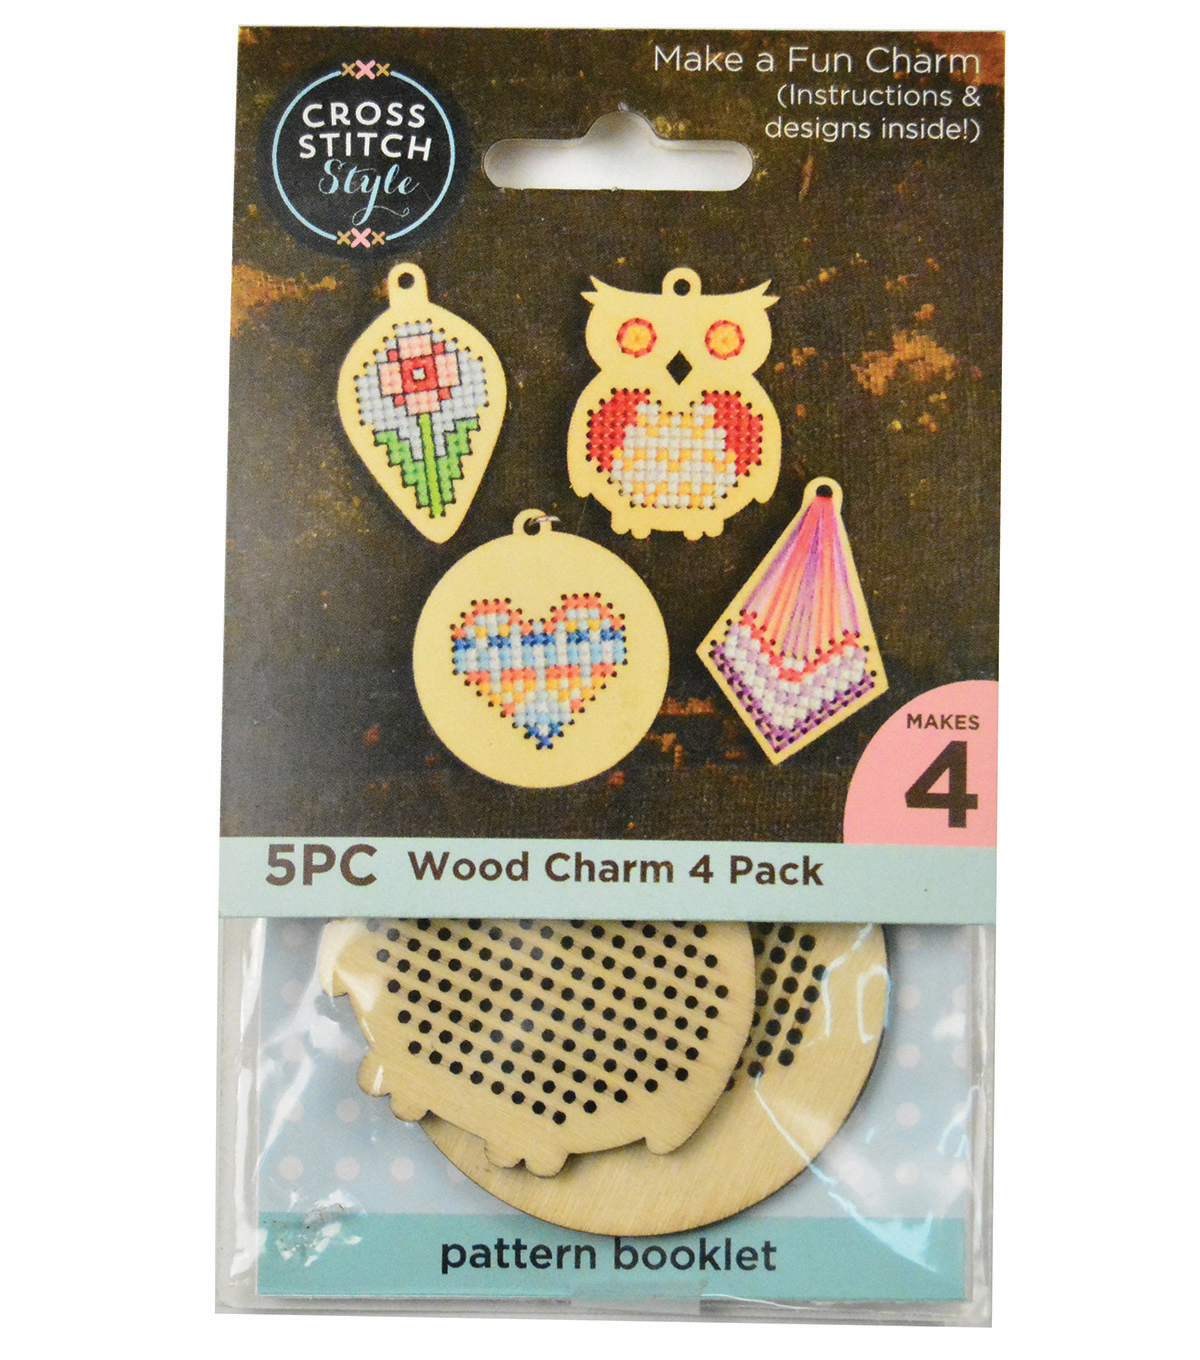 Cross Stitch Style 4 Pack Wood Charms-Diamond, Heart, Leaf & Owl